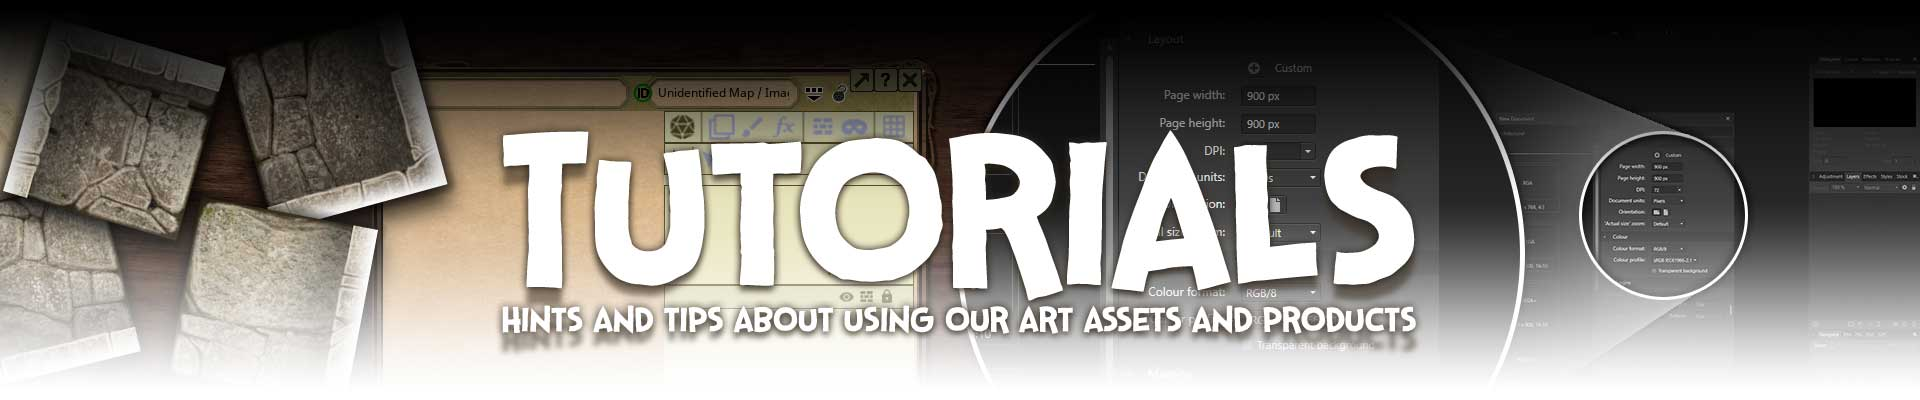 Tutorials - Hints and tips about using our art assets and products.